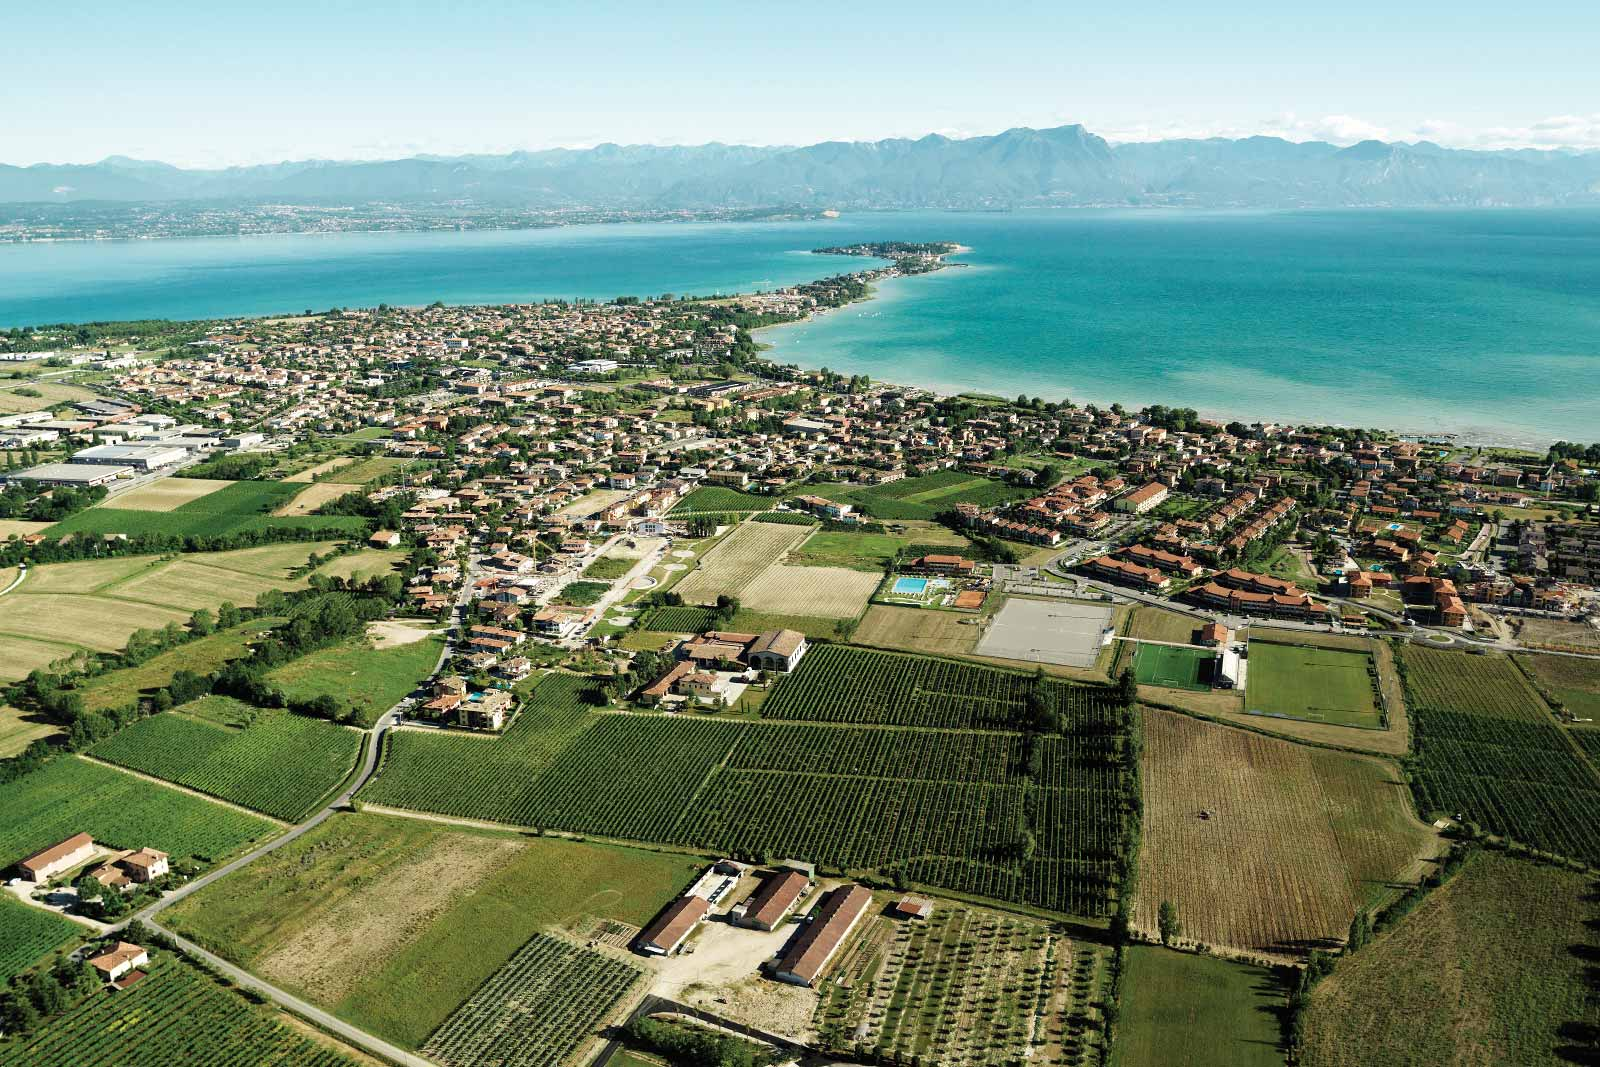 An aerial view of Lugana DOC reveals its proximity to Lake Garda and the Alps in the distance. ©Consorzio Tutela Lugana DOC